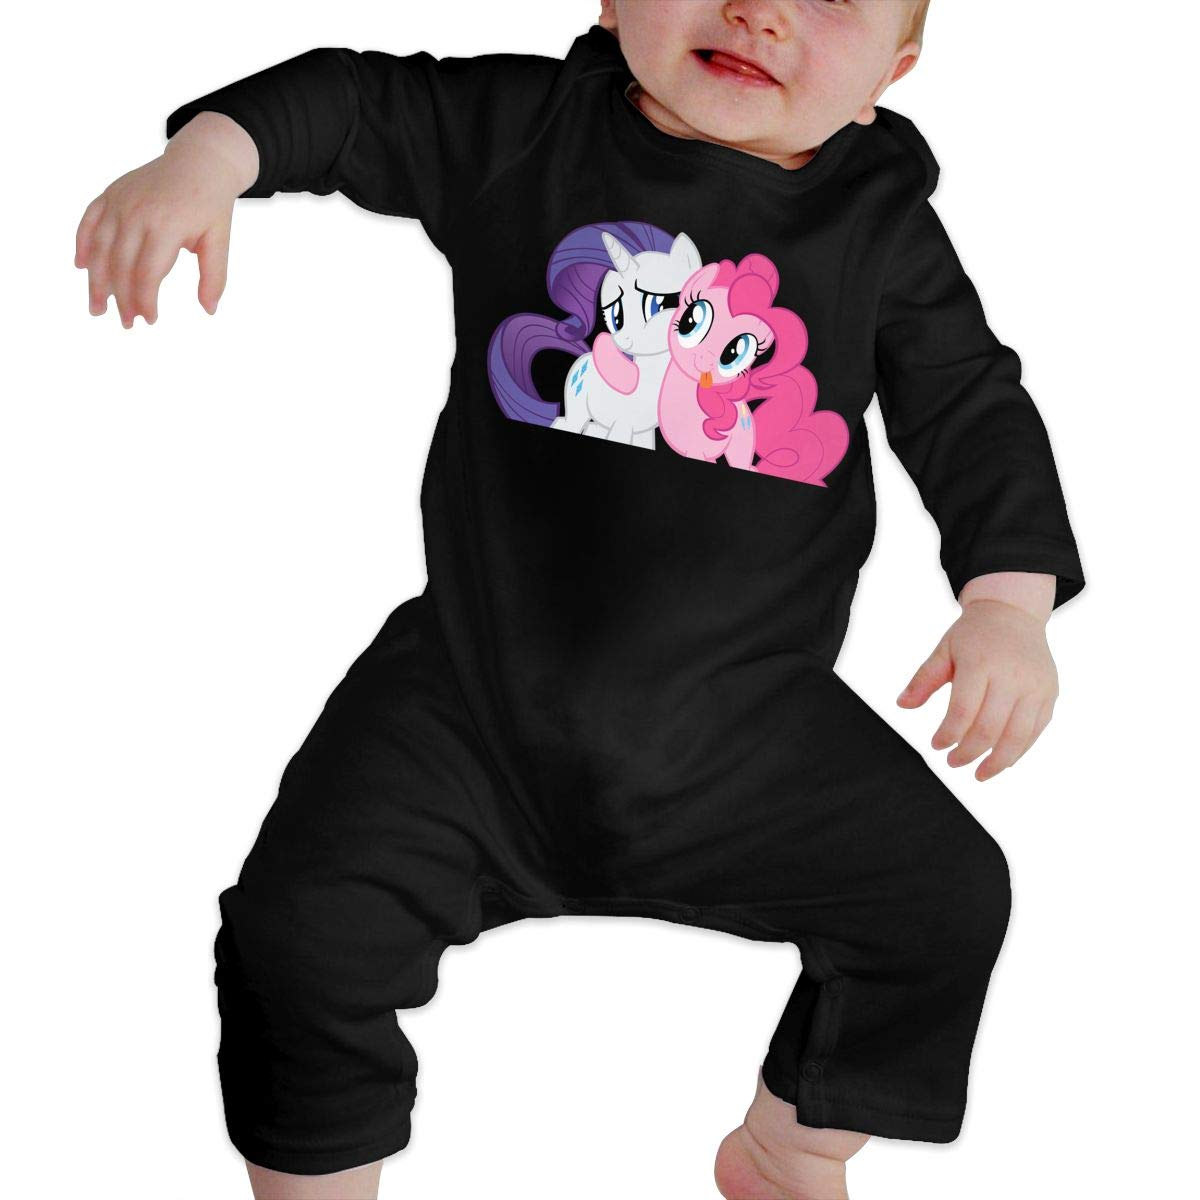 Unisex Baby Crew Neck Long Sleeve Pure Color Onesie Pony Friendship Crawling Clothes